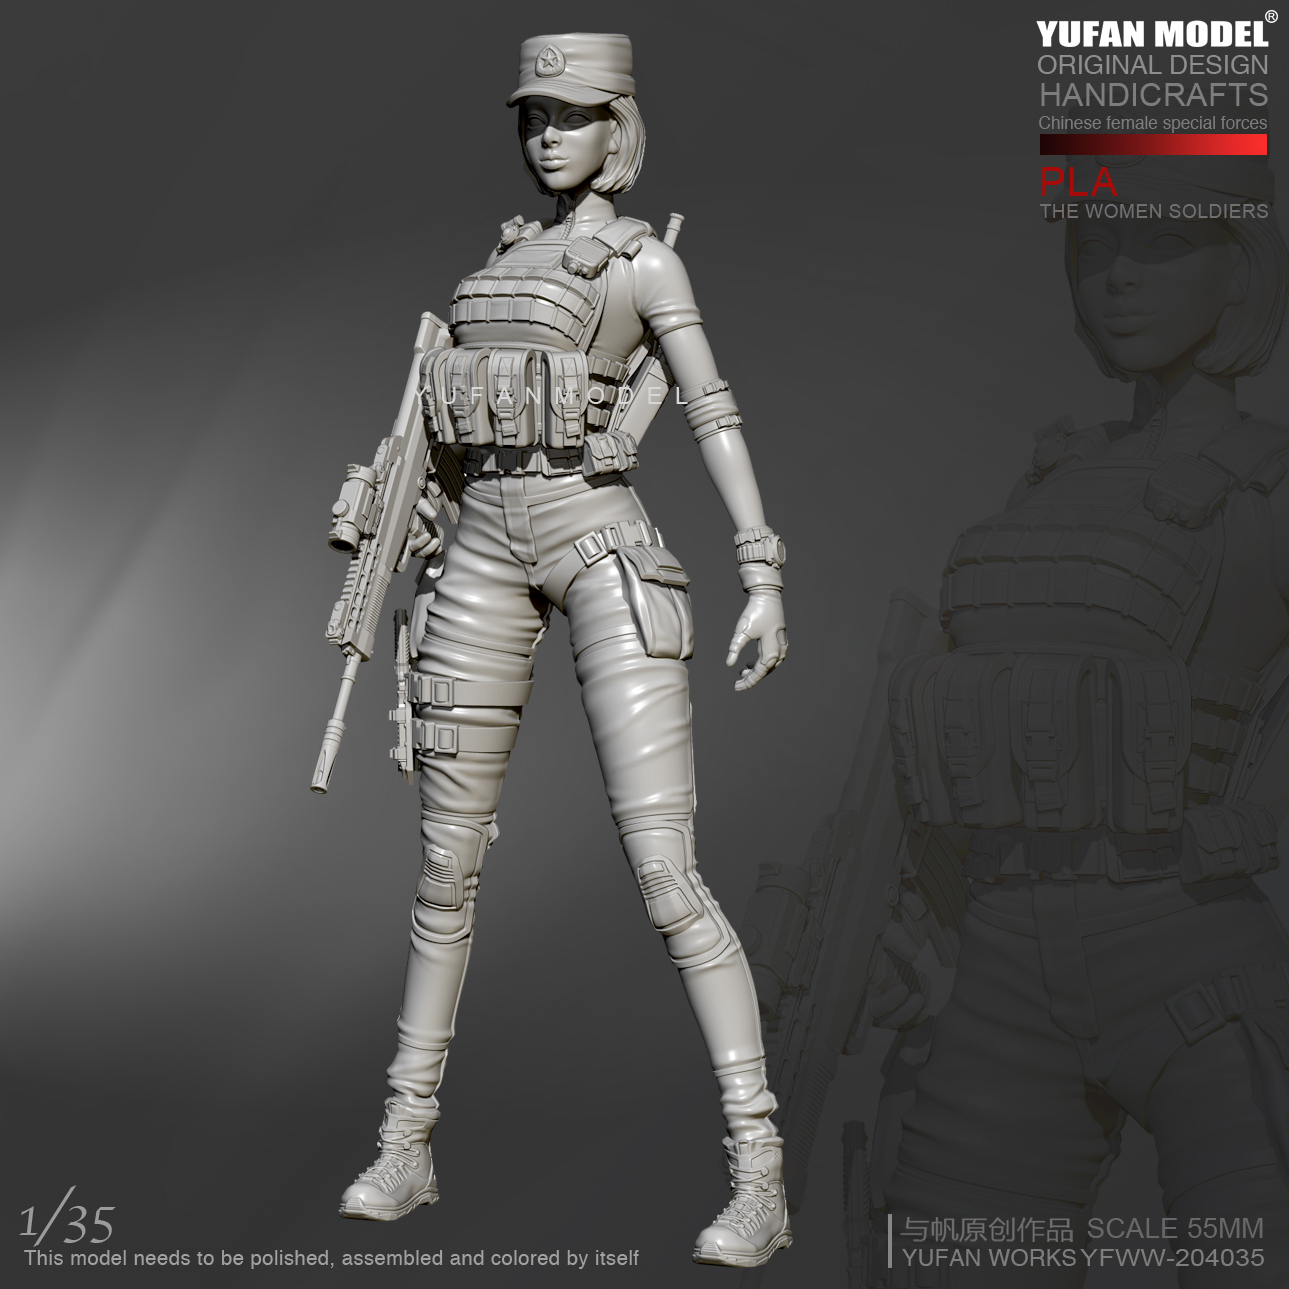 1/35 Resin Kits Women Special Forces YuFan Model Self-assembled YFWW35-2040